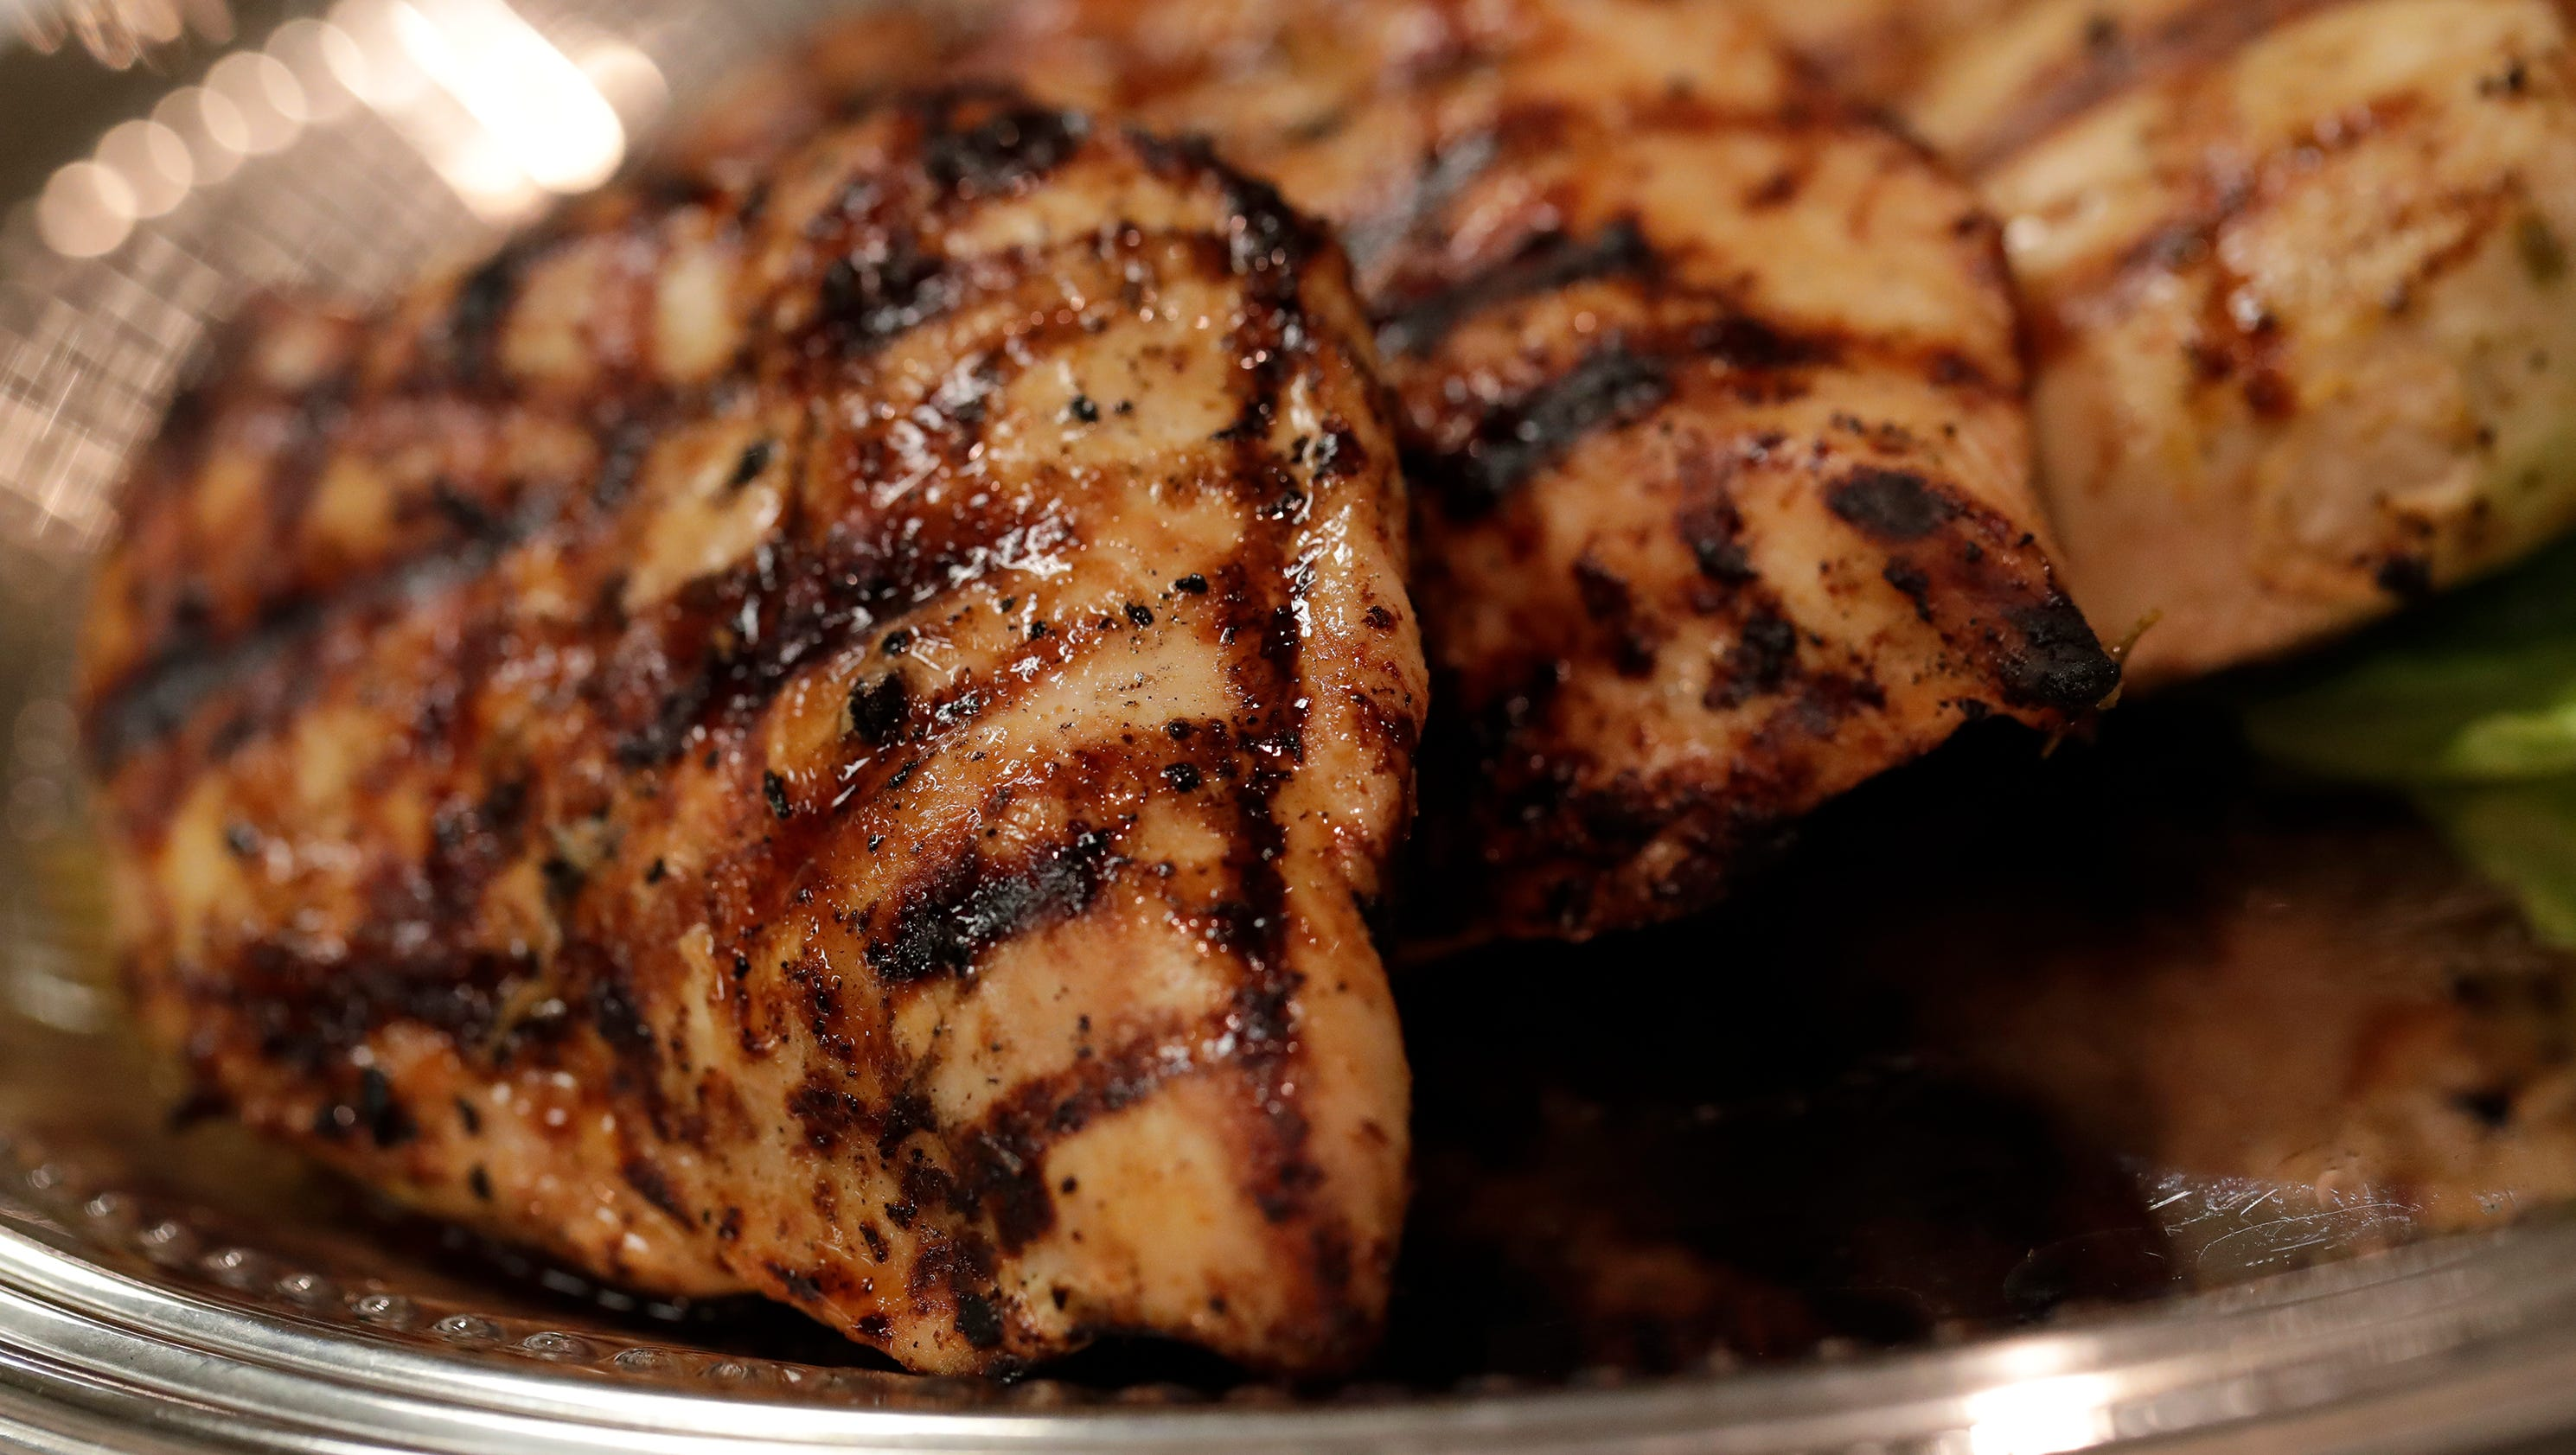 Jul 16, · Chicken breasts, thighs, quarters, wings, legs and bone in pieces can be used for this chicken marinade recipe. Chicken can be marinated overnight by waiting to add the lemon juice until the last 30 minutes to 1 hour of marination time/5(20).